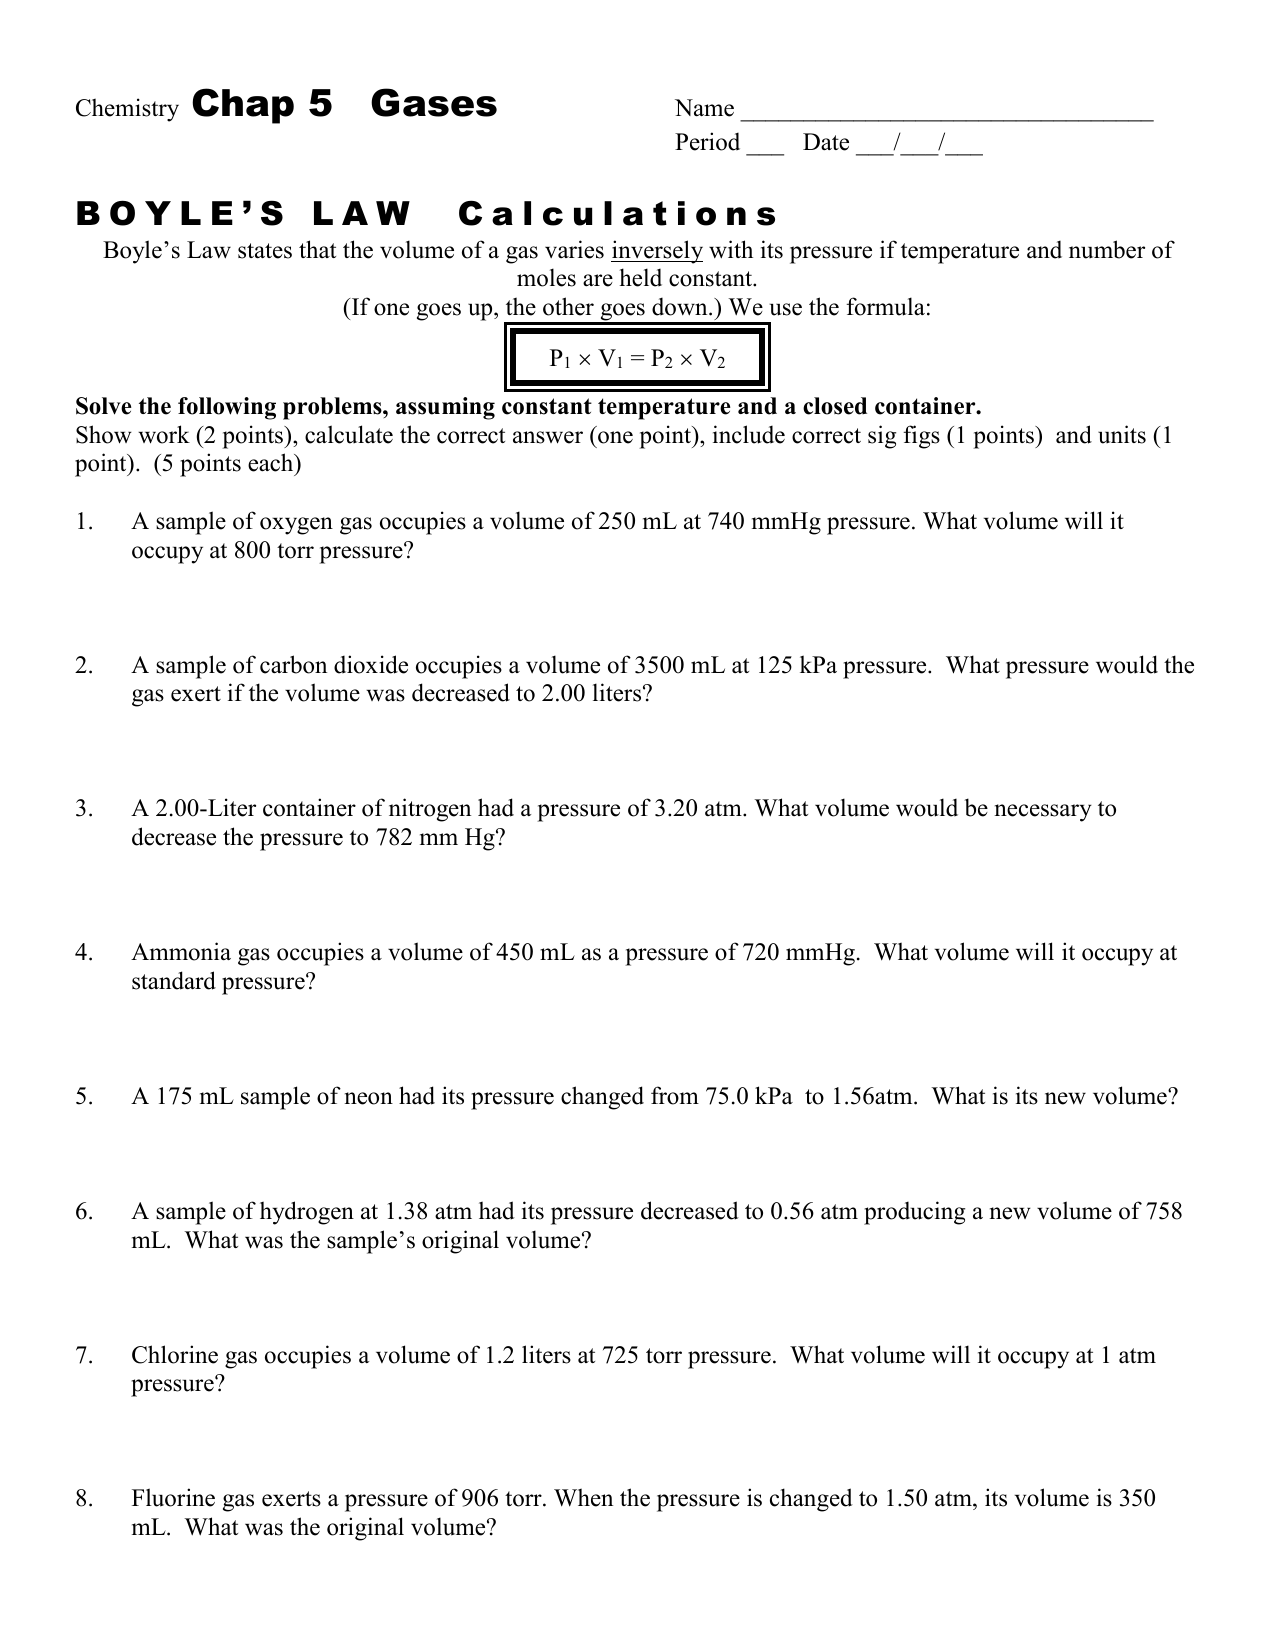 SparkNotes  Ideal Gases  Problems in addition Microsoft PowerPoint   Boyle\222s and Charles\222s Gas Law Virtual furthermore  moreover  further Boyles And Charles Law Worksheet  Boyles And Charles Law Worksheet besides Chap 12 Boyle's Law Worksheet boyle's Law wksht 12 furthermore  in addition Boyle's   Charles' Law Problems by Gary Edelman   TpT as well  in addition Solved  Boyle's and Charles's Laws Worksheet Name   Date moreover  as well Boyles And Charles Law Worksheet New Stock Of Charles Law Chem as well Solving  bined Gas Law Problems   Charles' Law  Boyle's Law together with GAS LAWS WORKSHEET  1  On a separate besides Charles Law Worksheet Answer Key   Lobo Black besides Charles Boyle's Law Worksheet by Leah's Chemistry Corner   TpT. on boyles and charles law worksheet